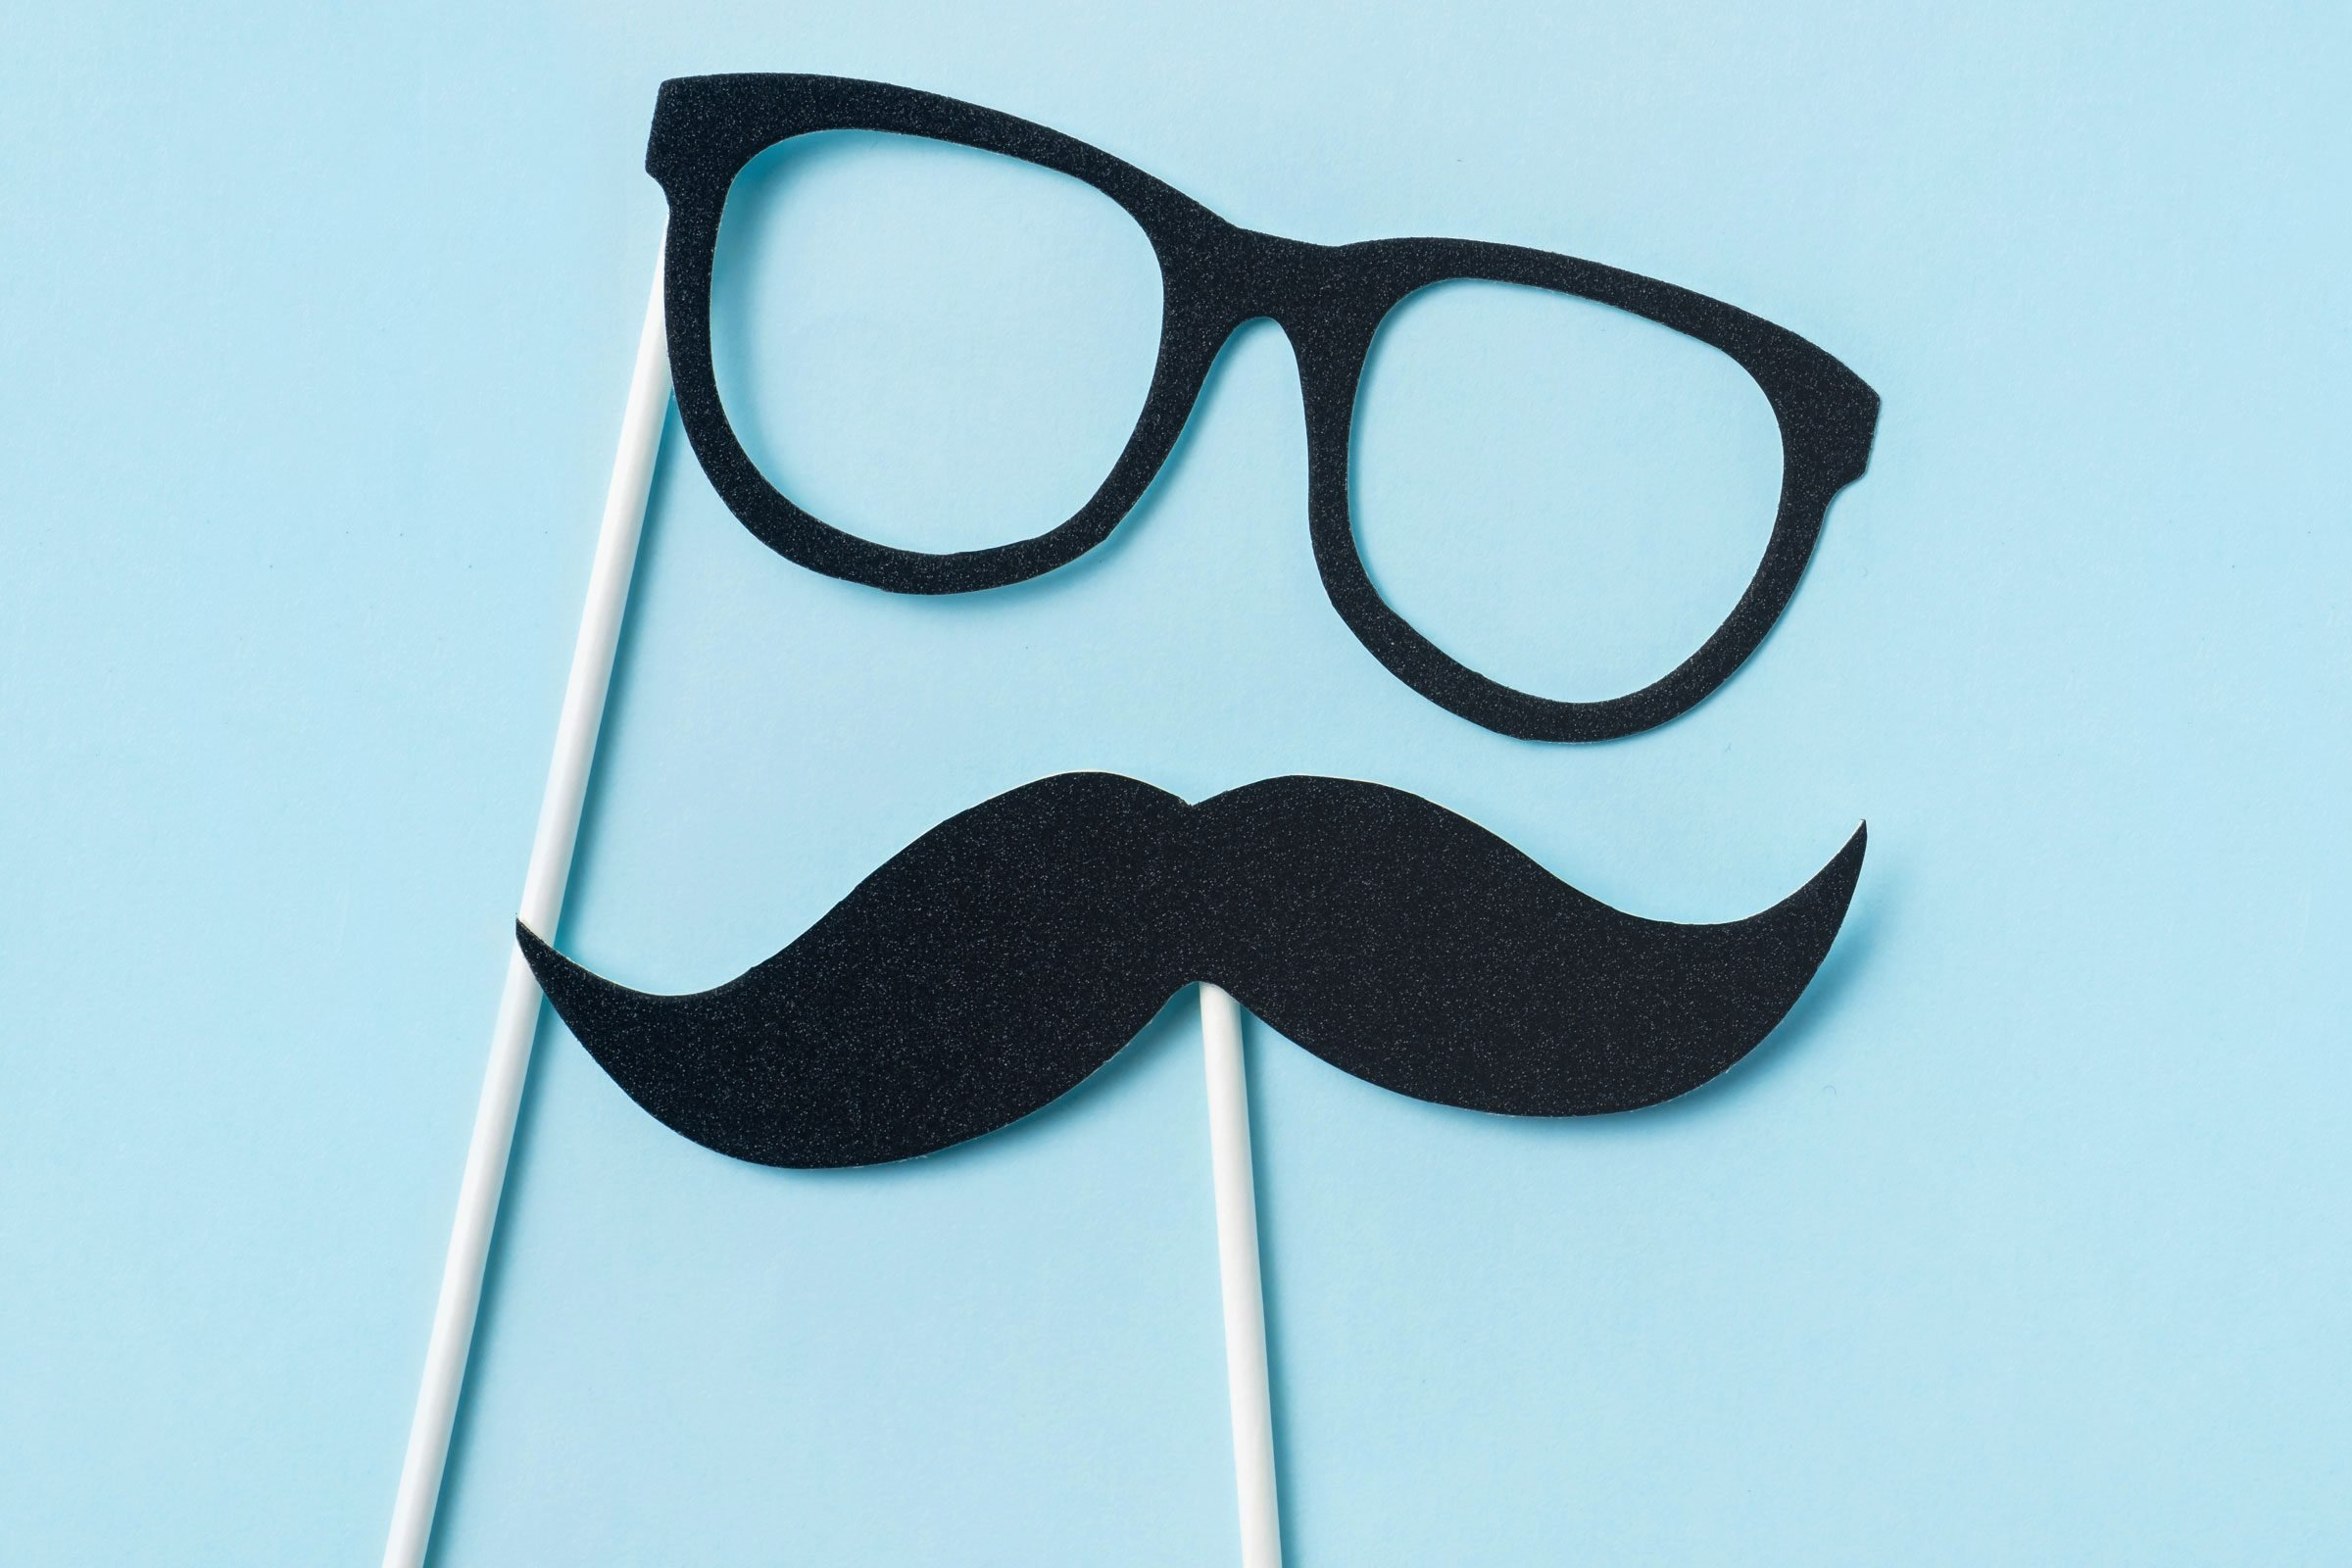 glasses and mustache photo booth props on blue background